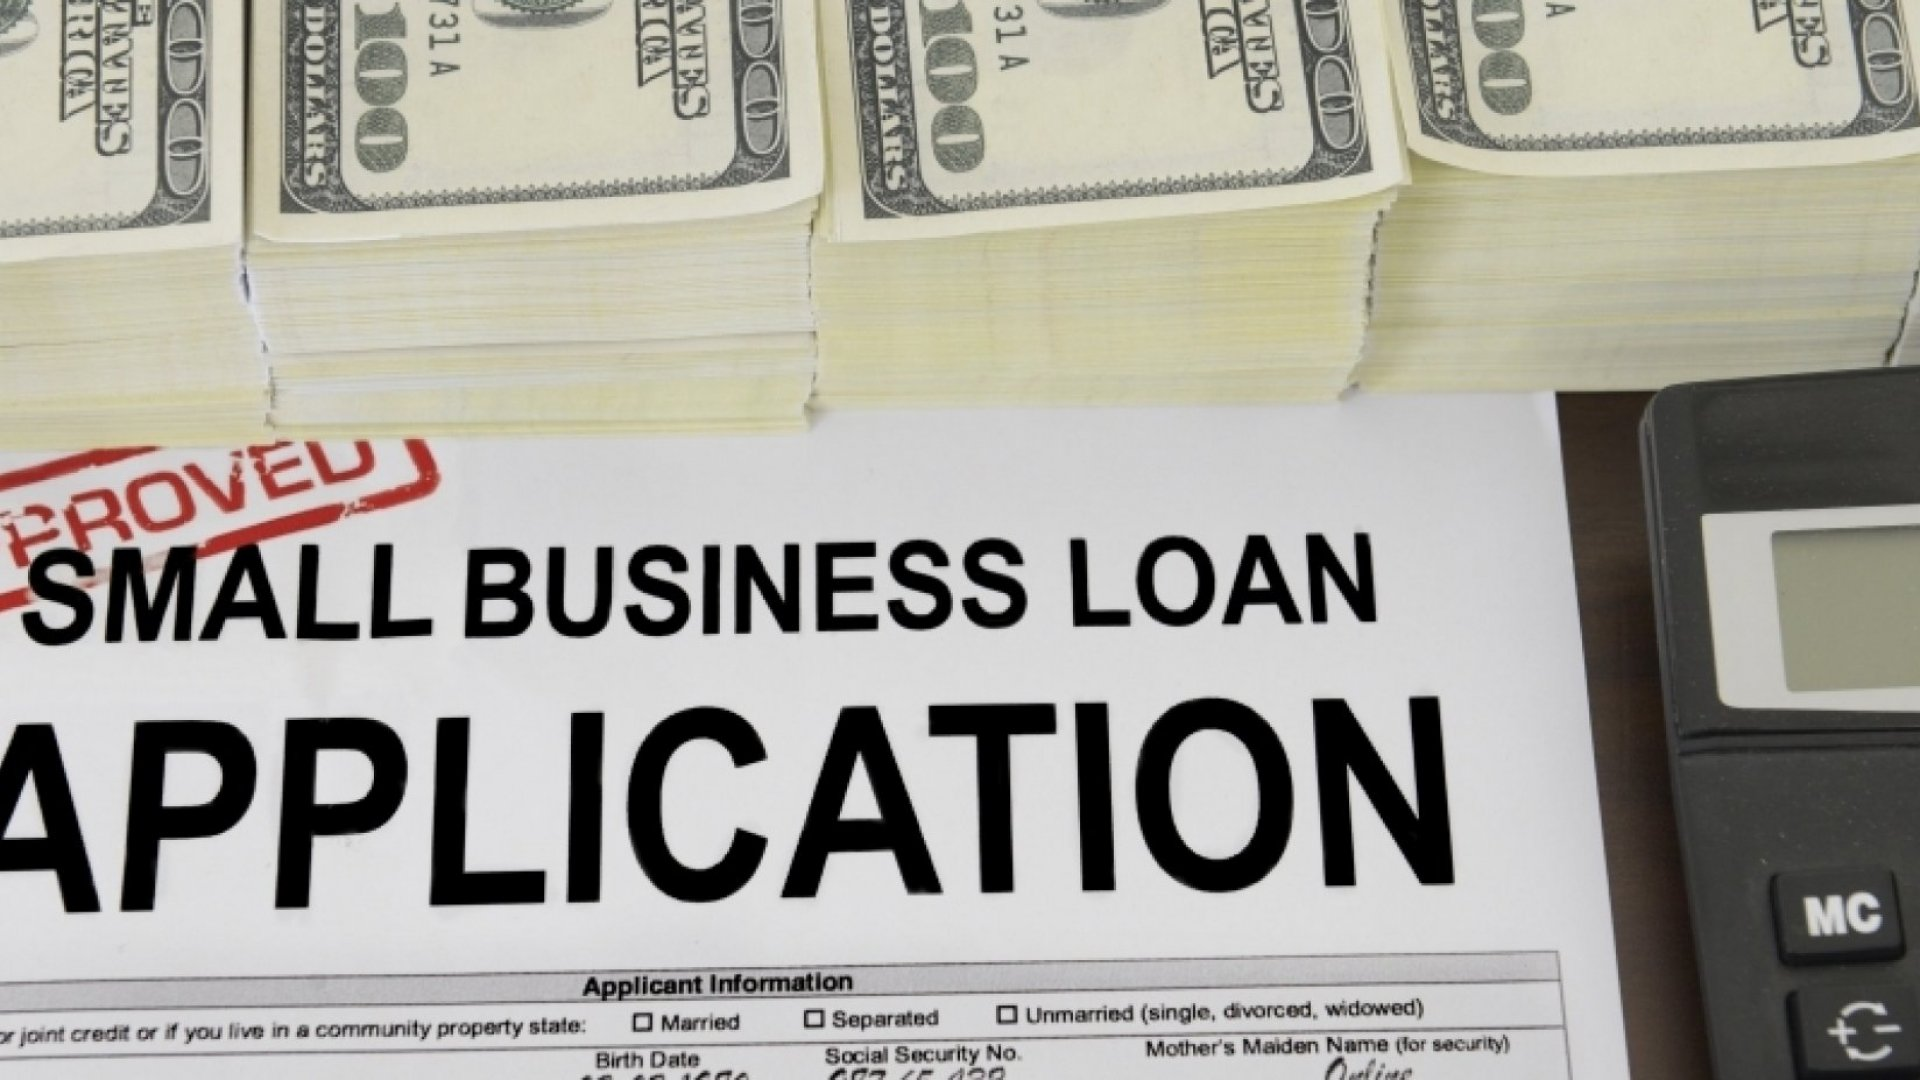 Why Higher Interest Rates Are Good for Small Business